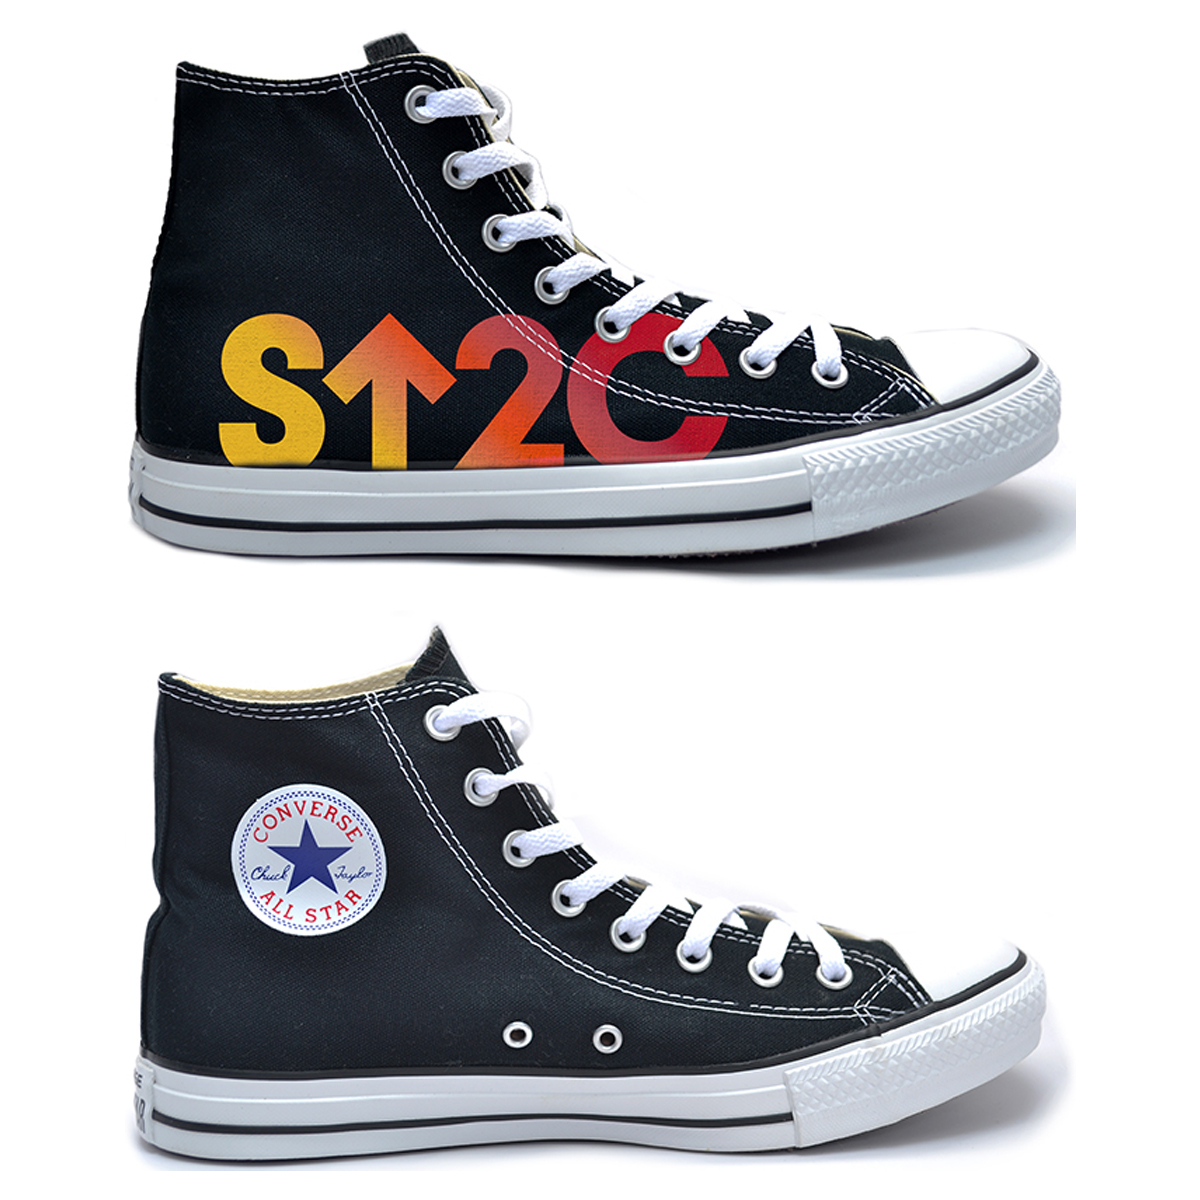 SU2C Sunrise Converse All-Star High Top